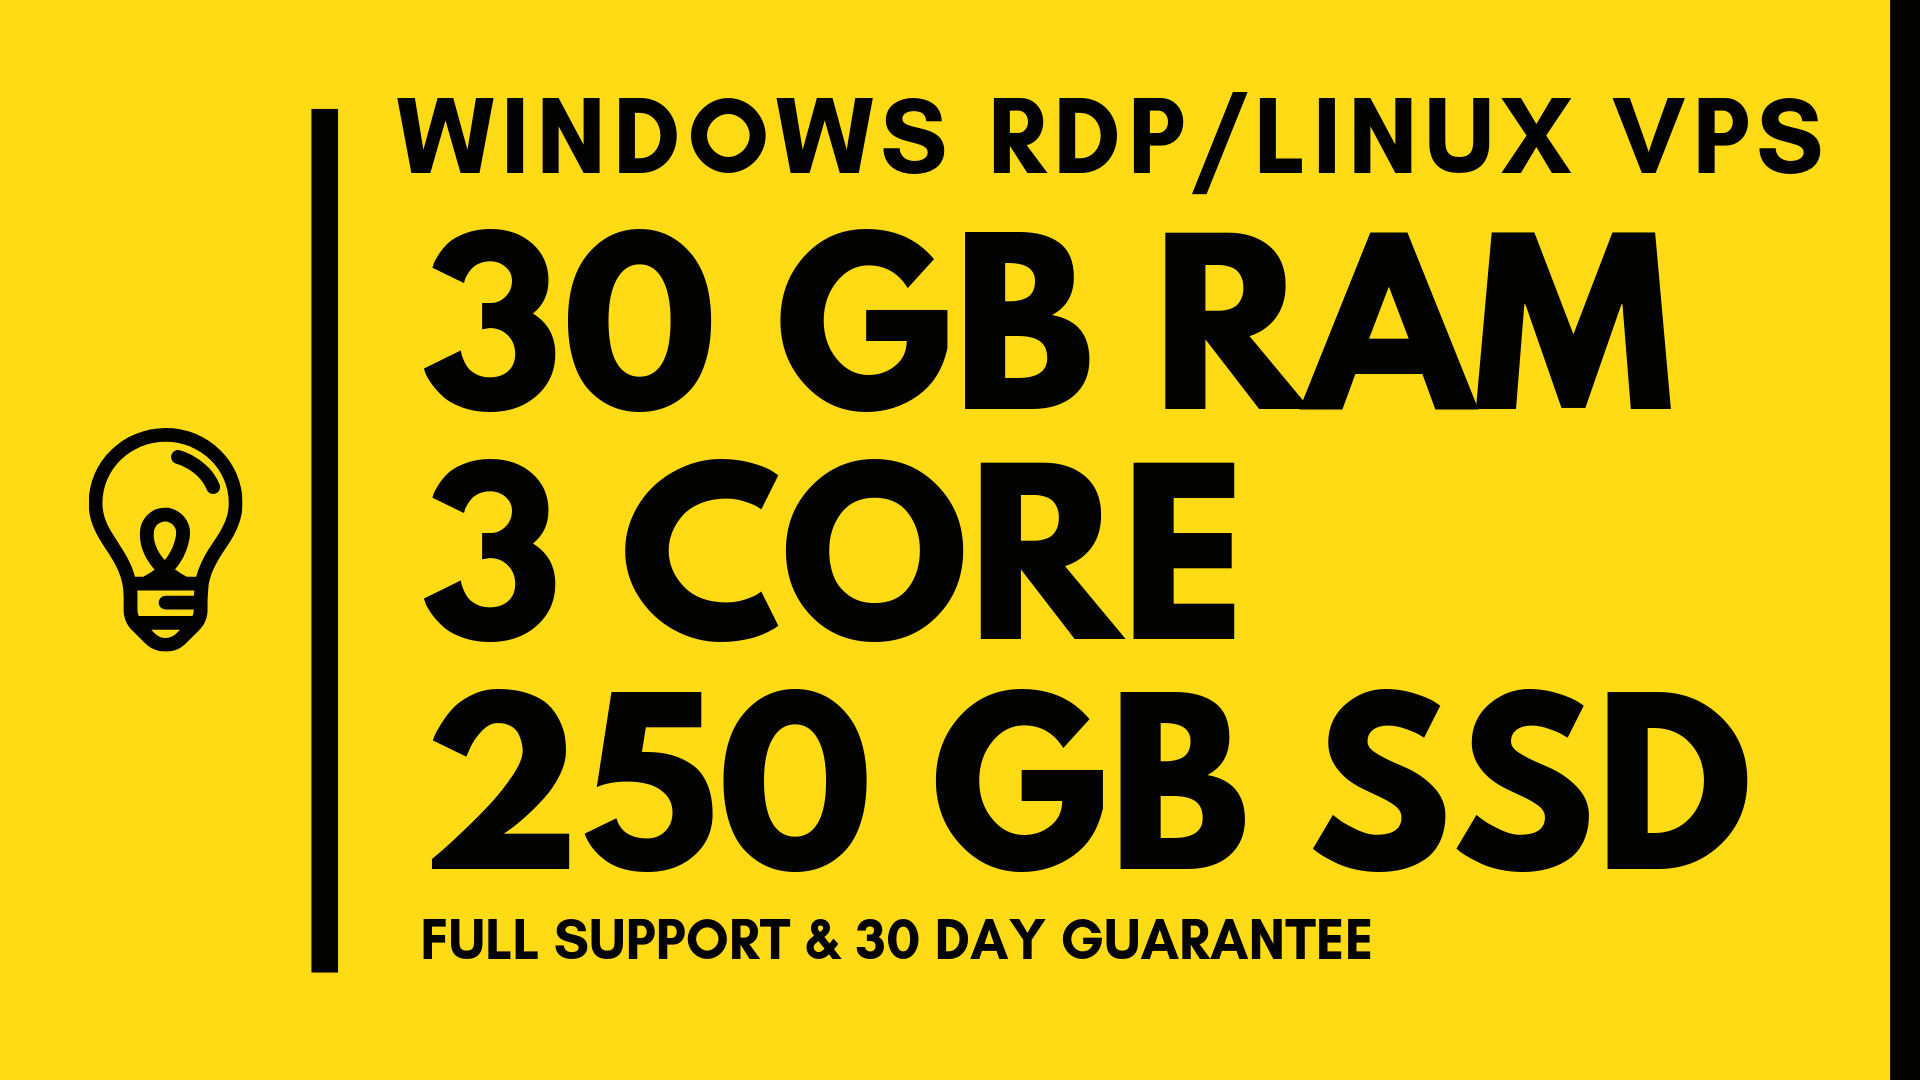 Windows VPS RDP 30GB RAM 3CORE 250GB SSD